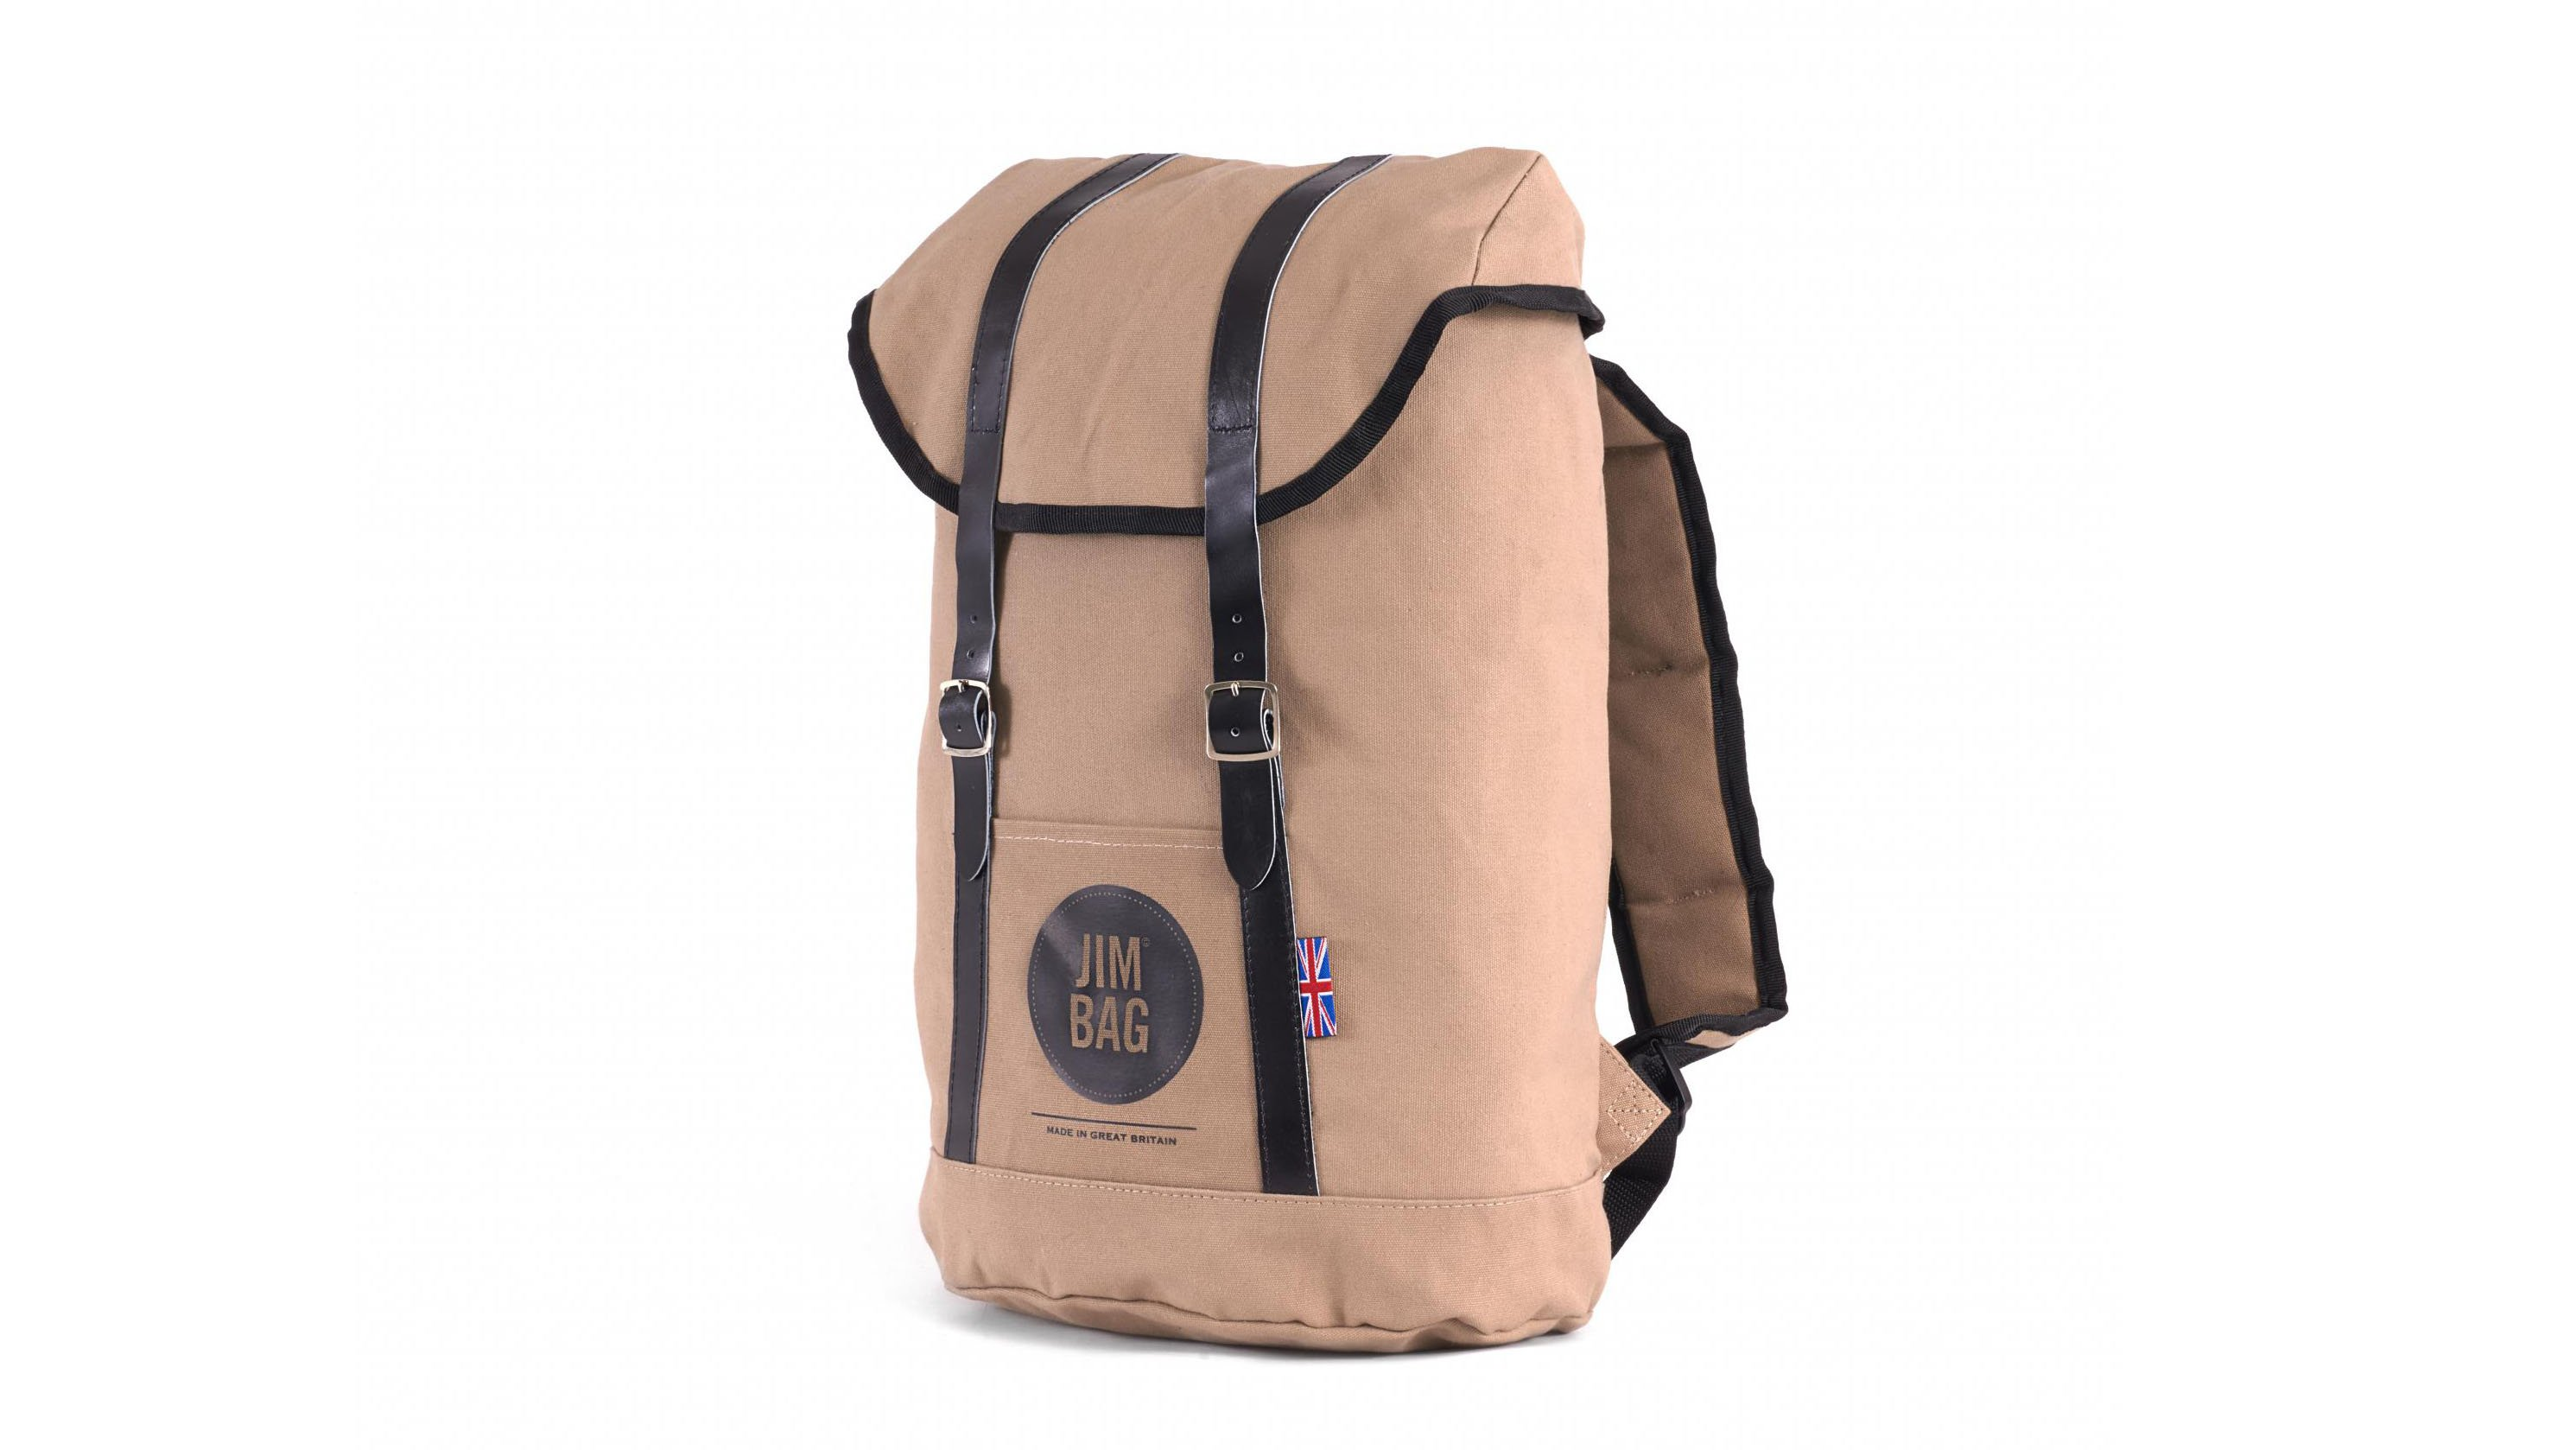 British company Jim Bag makes colourful bags in all shapes and sizes –  duffels 3366e37f2f37b